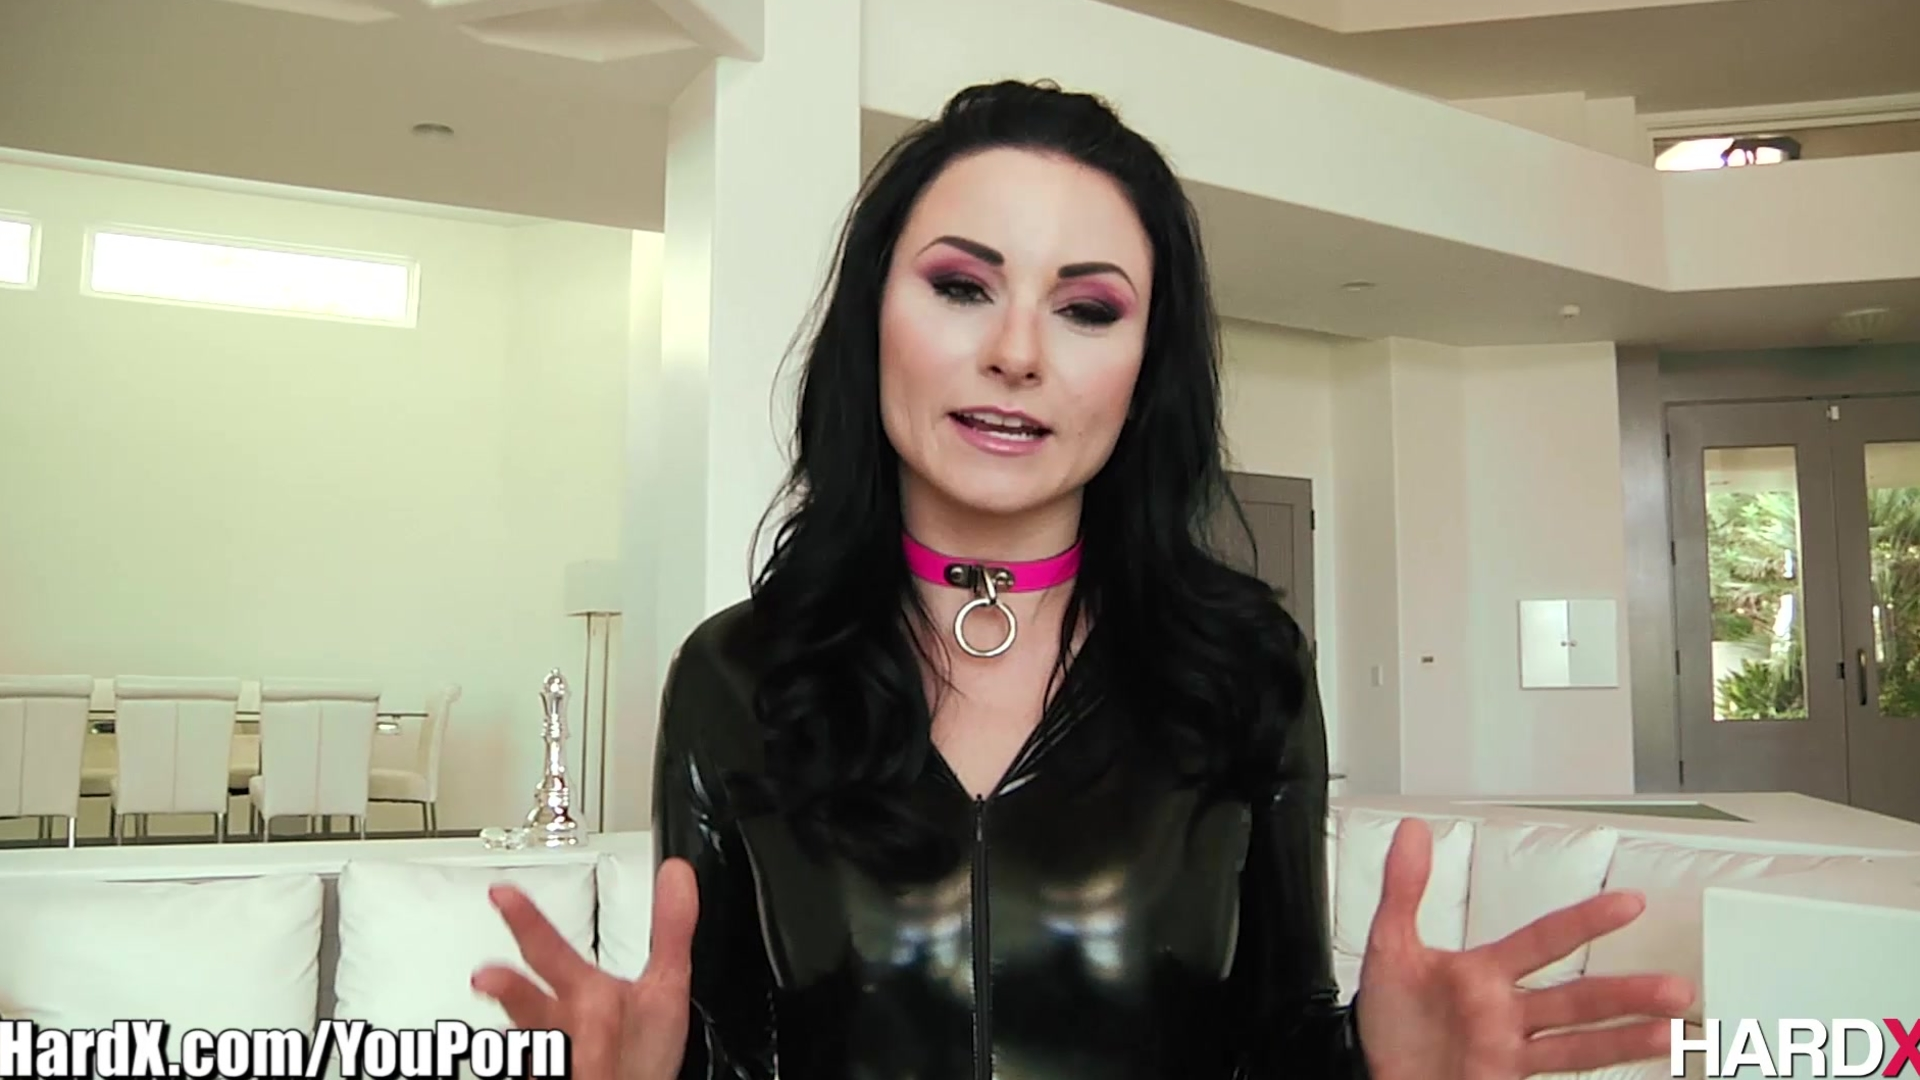 1000facials put cream on veruca jame039s face 1